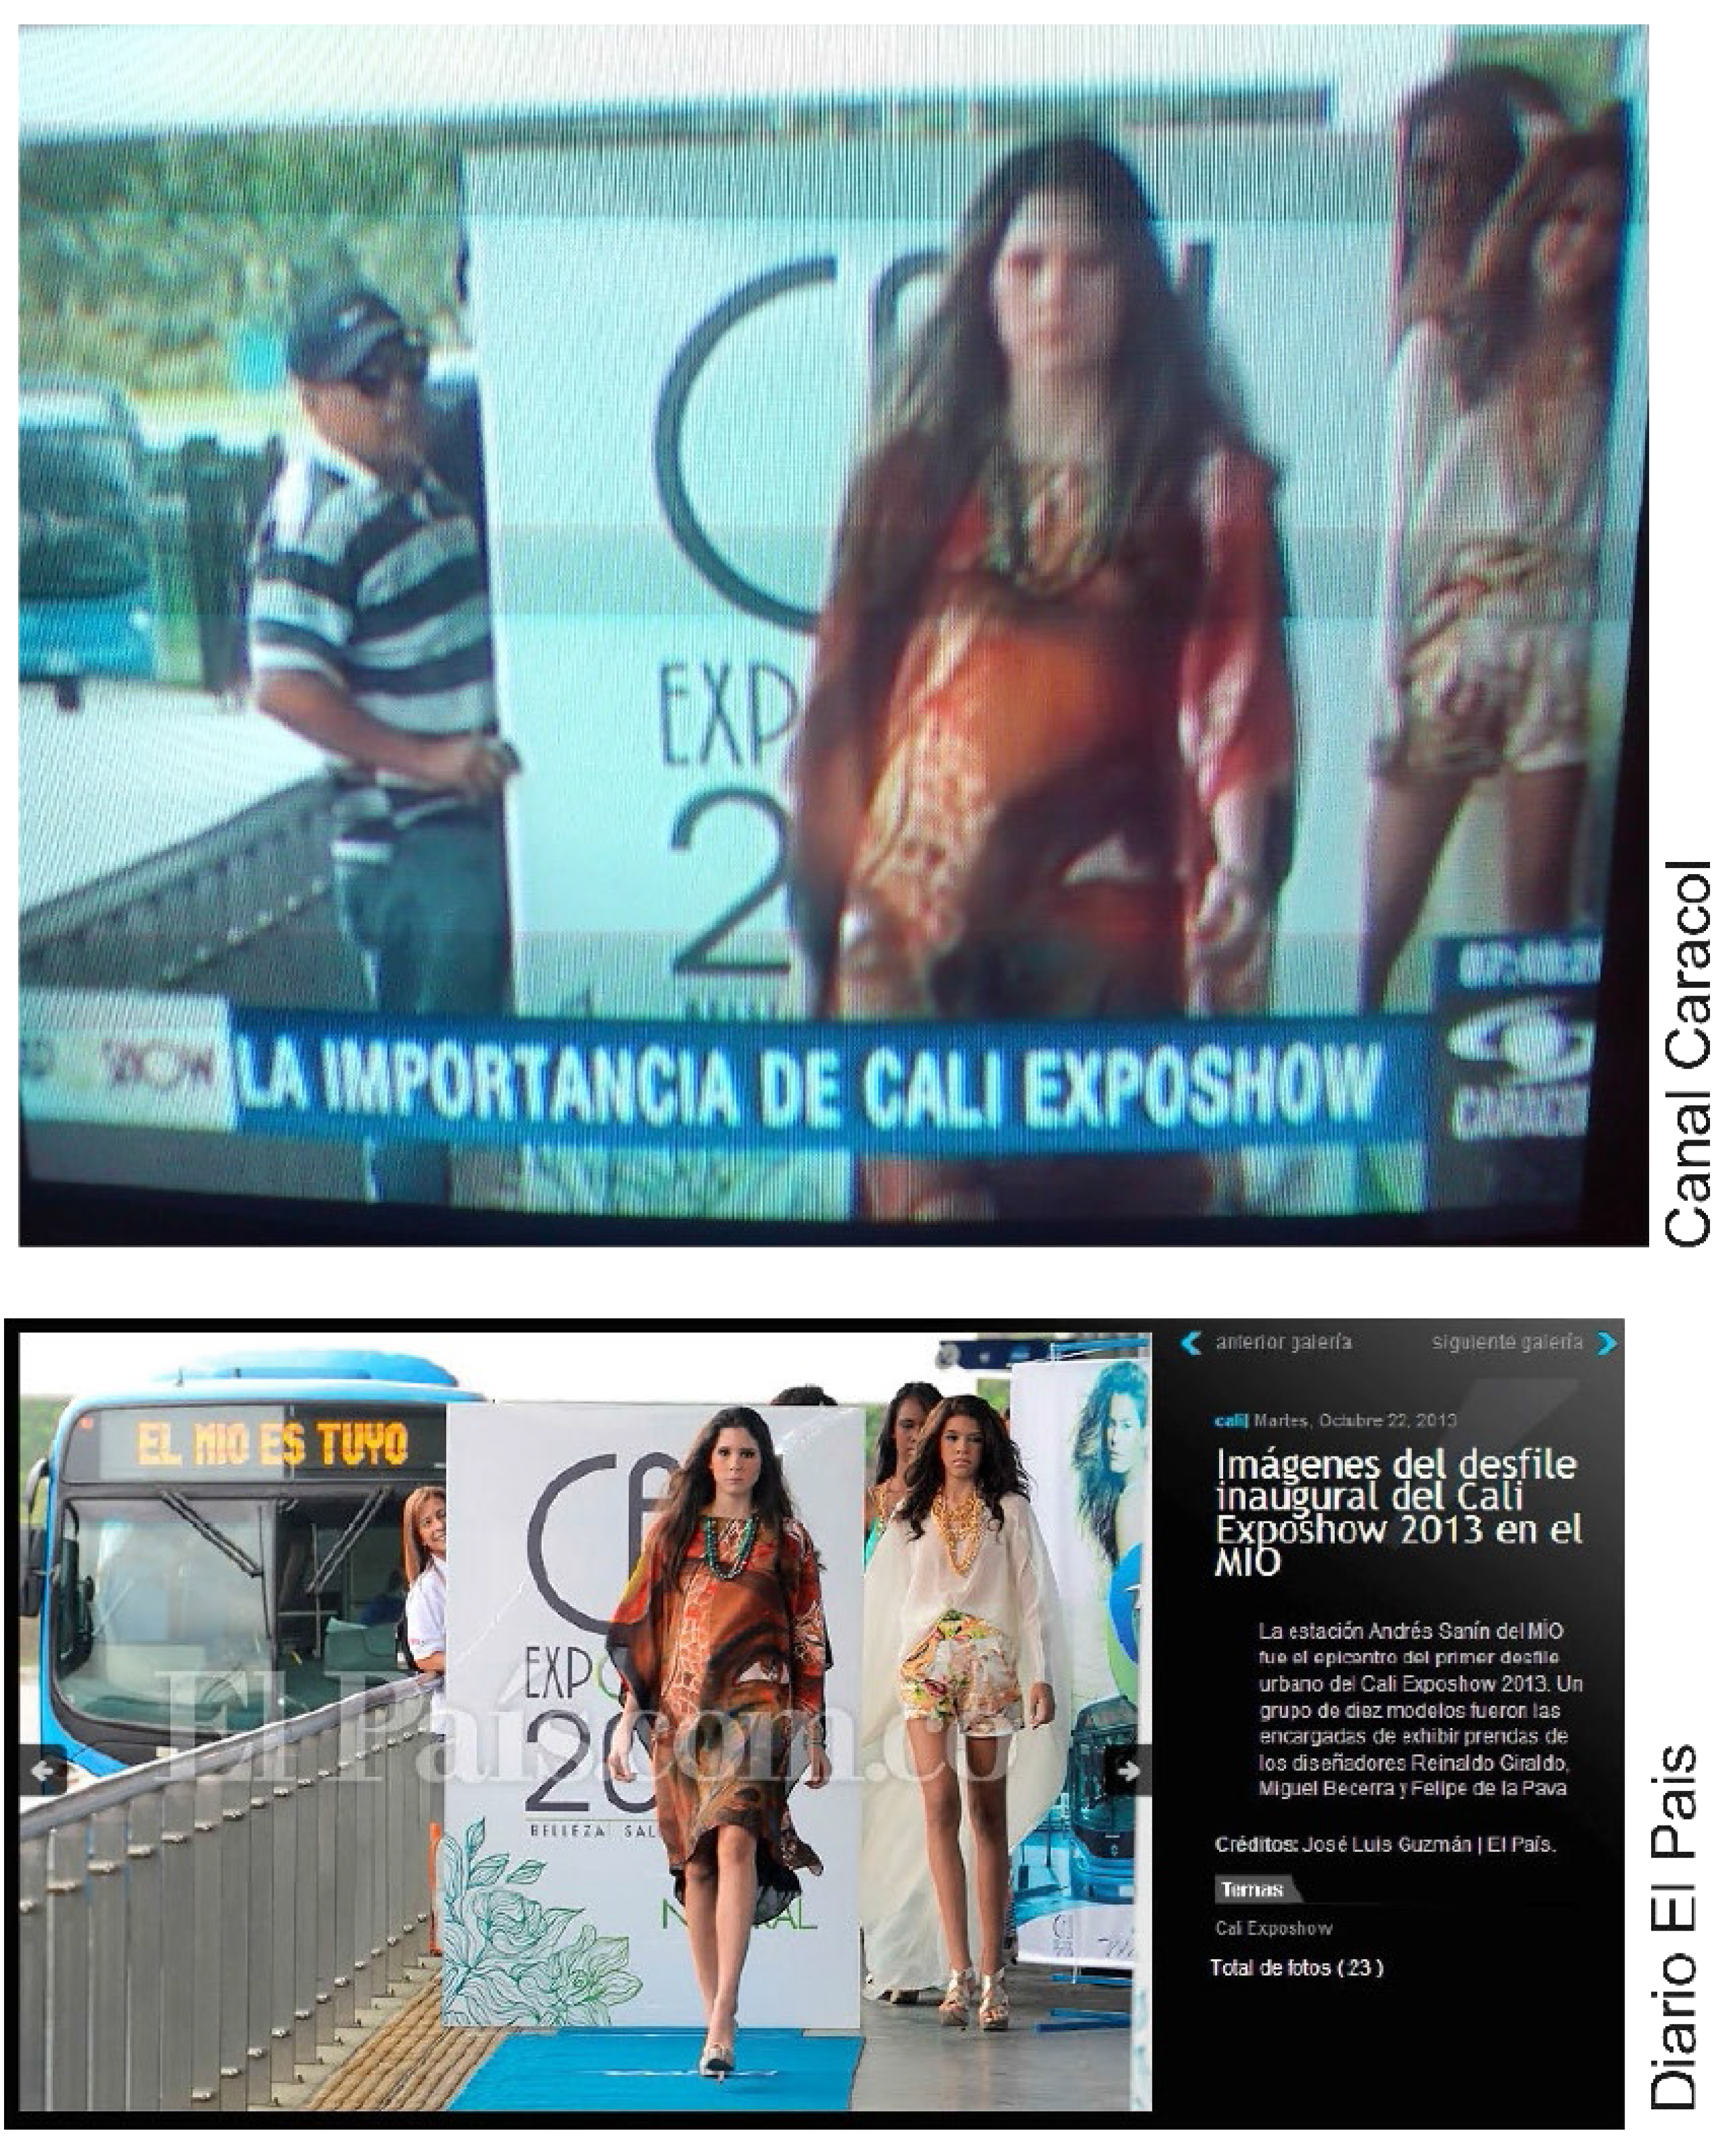 CALI_EXPOSHOW_2013_PRENSA_PRESS_REI_GIRALDO